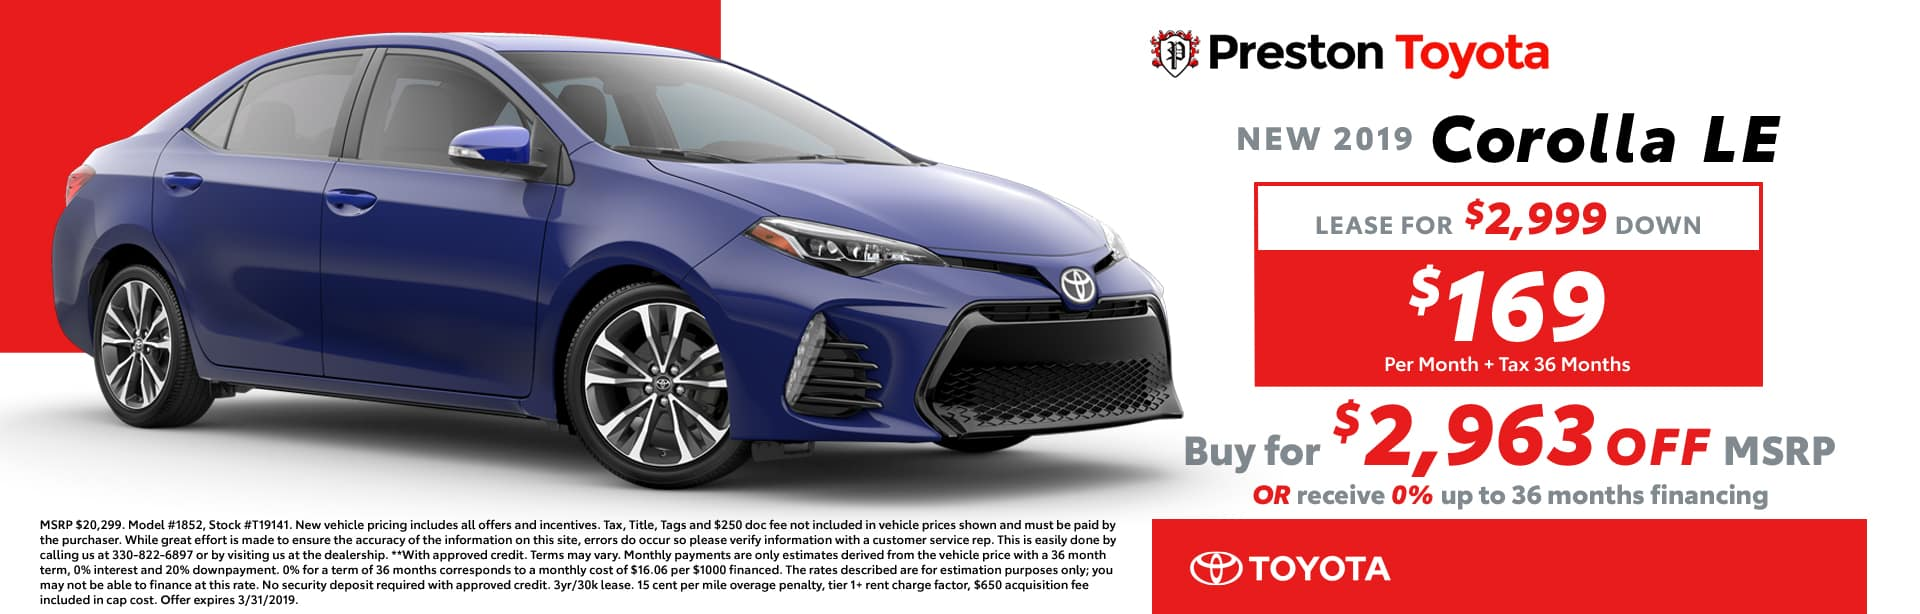 March Special on the 2019 Toyota Corolla